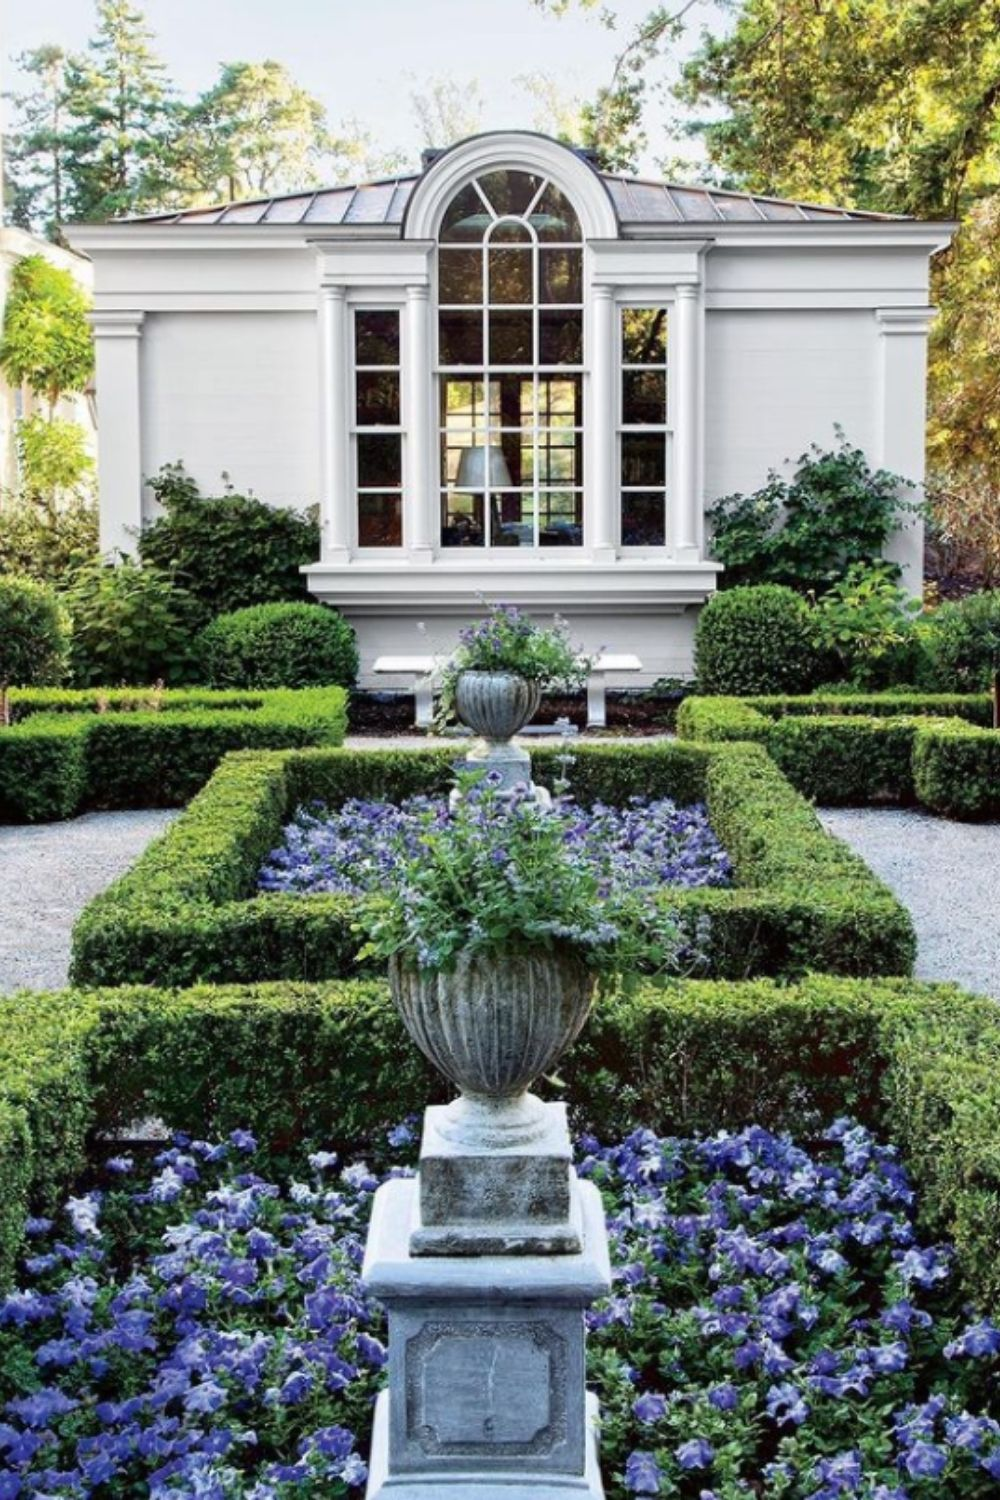 How to Choose Summer Front Yard Landscaping Ideas 2021